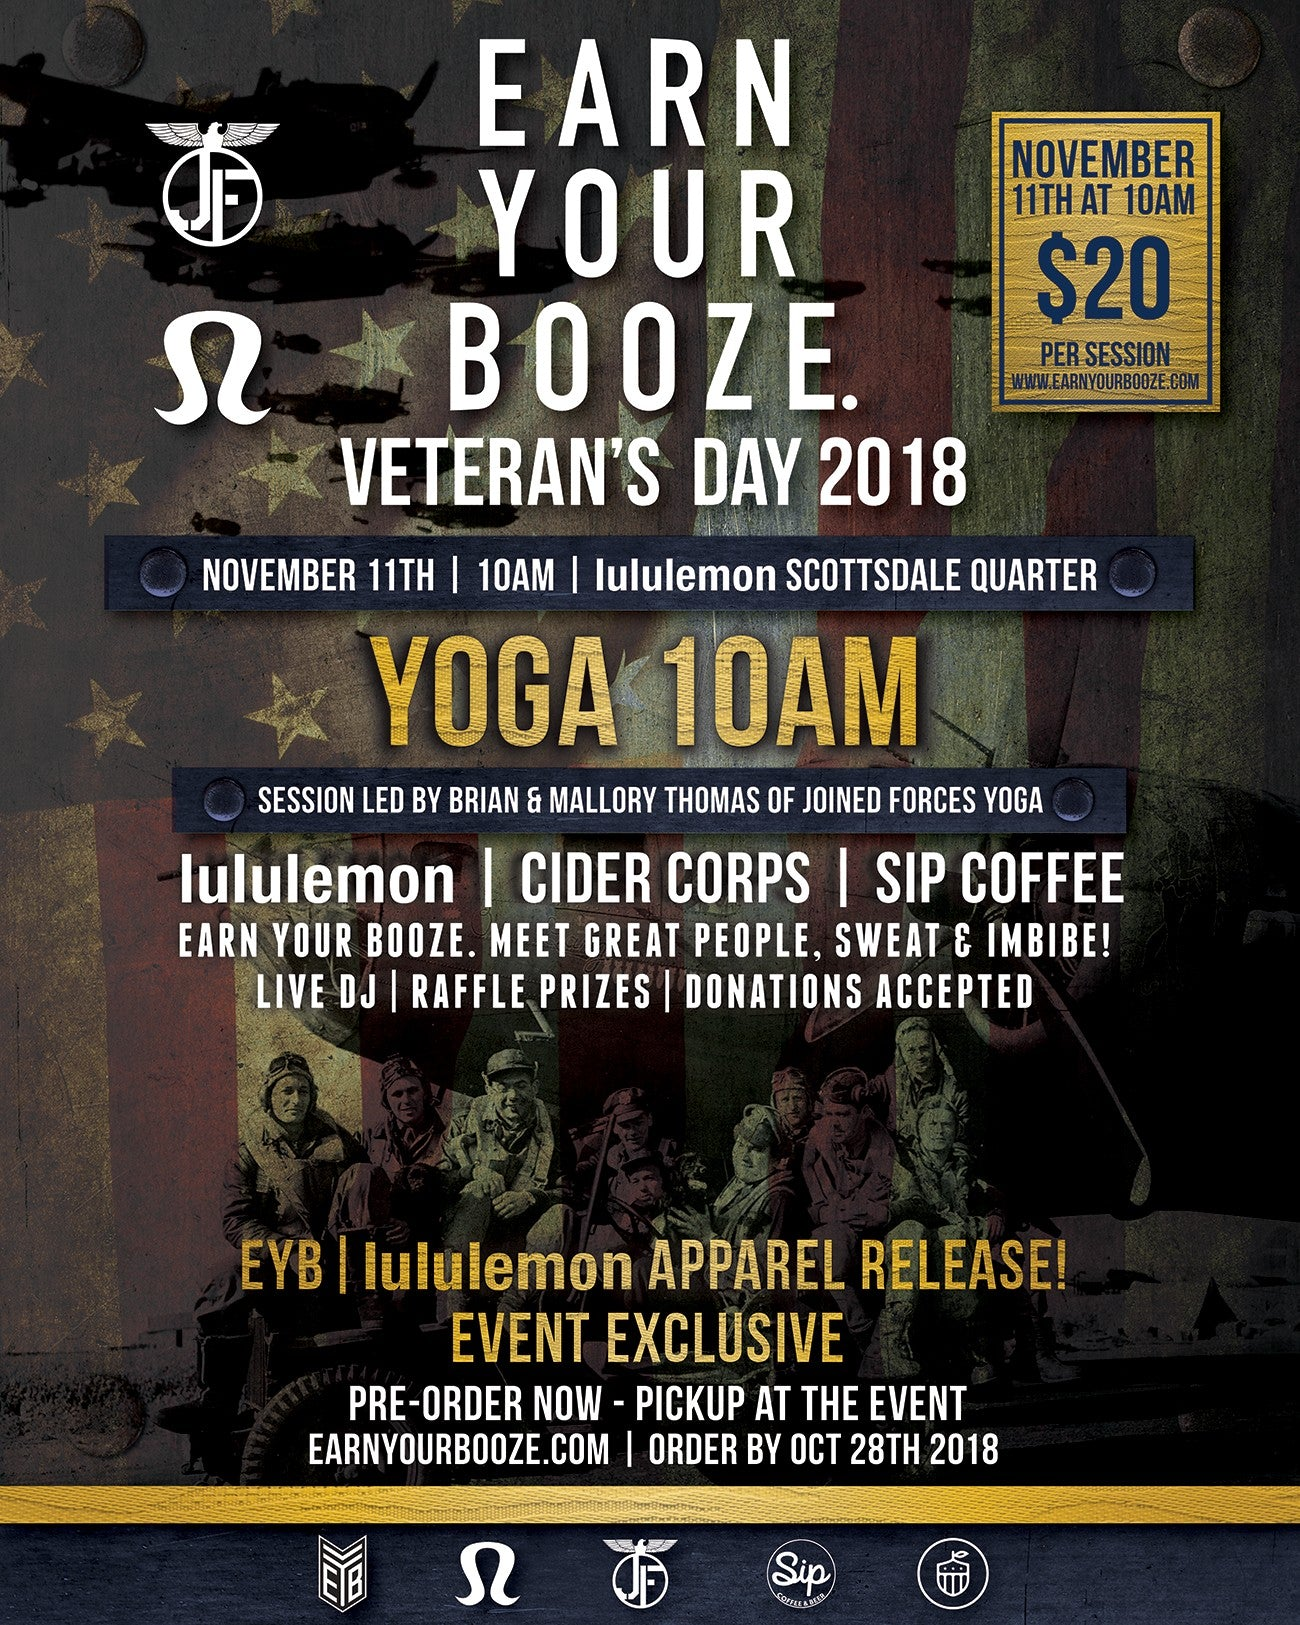 Veteran's Day 2018 w/ lululemon & Joined Forces Yoga | EARN YOUR WINE | EARN YOUR VINOEarn Your Booze